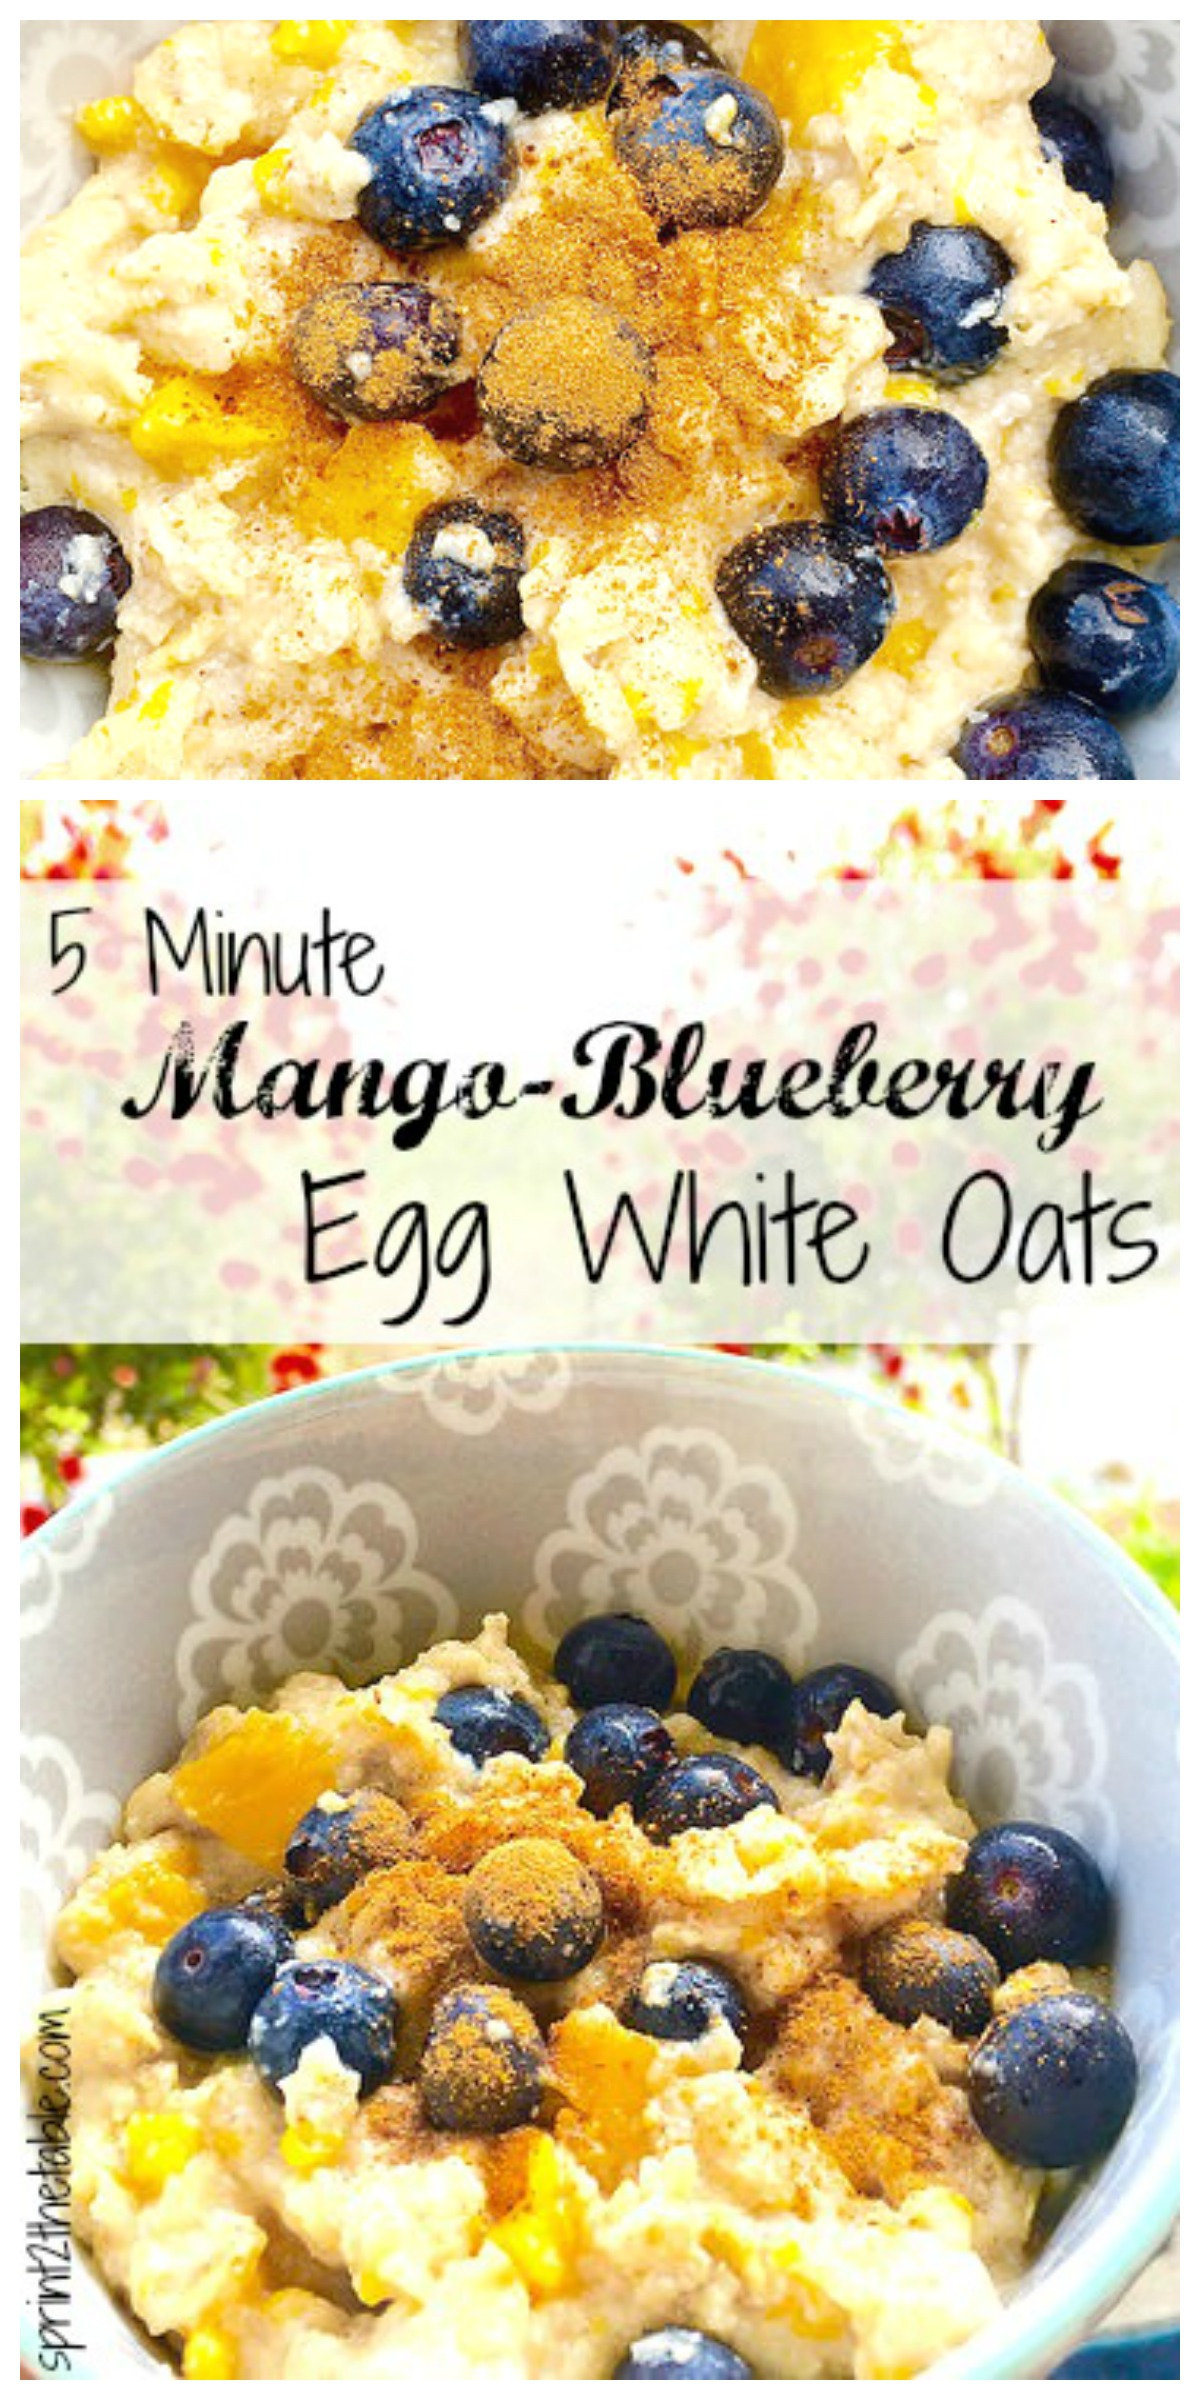 5 Minute Mango-Blueberry Egg White Oats - quick balanced and healthy breakfast that's high in protein and gluten-free!